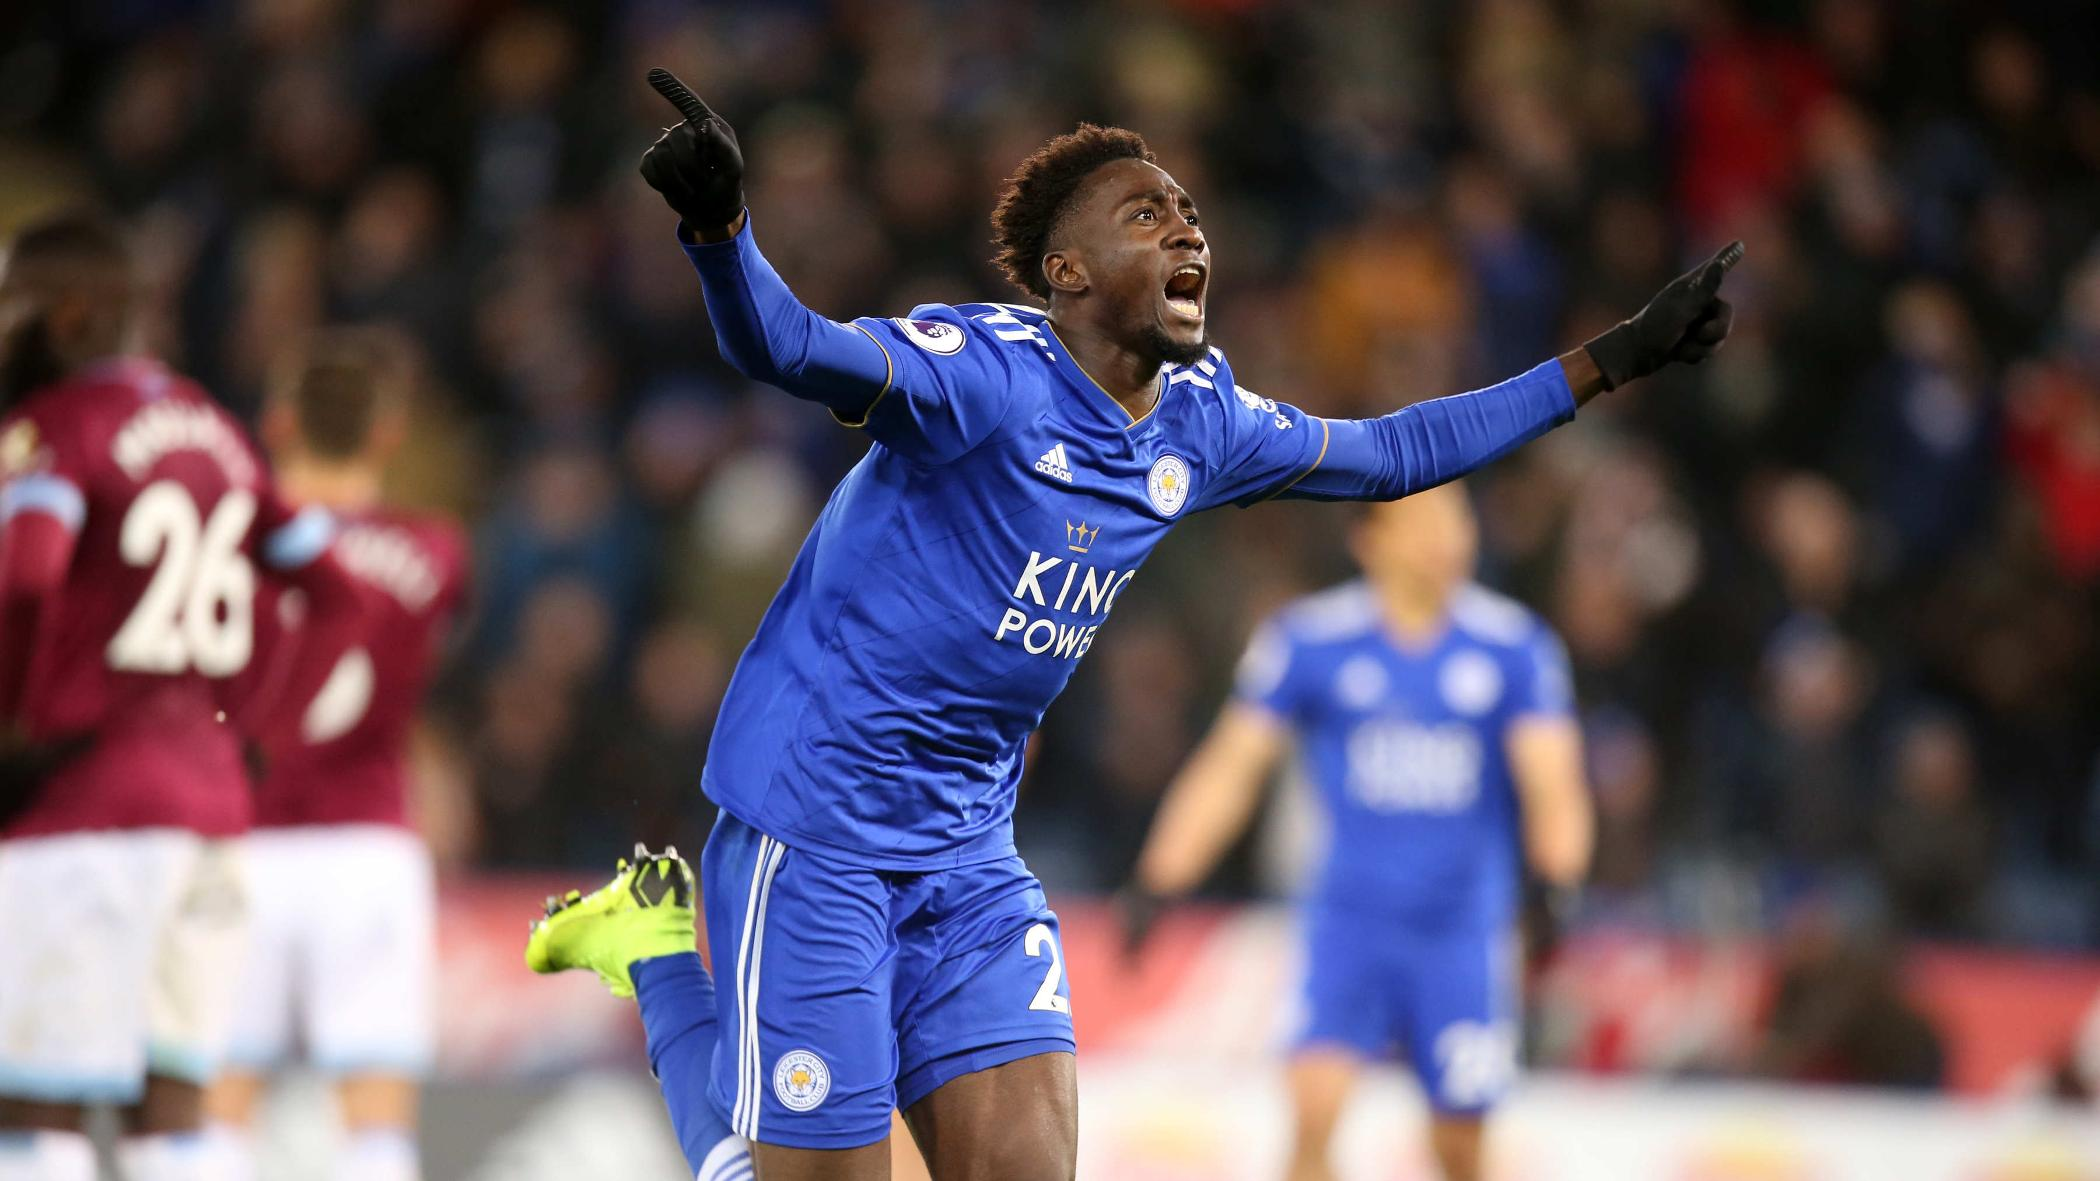 Ndidi Starts; Iheanacho Missing;Pogba, Son Hit Brace As United, Spurs Win On Boxing Day